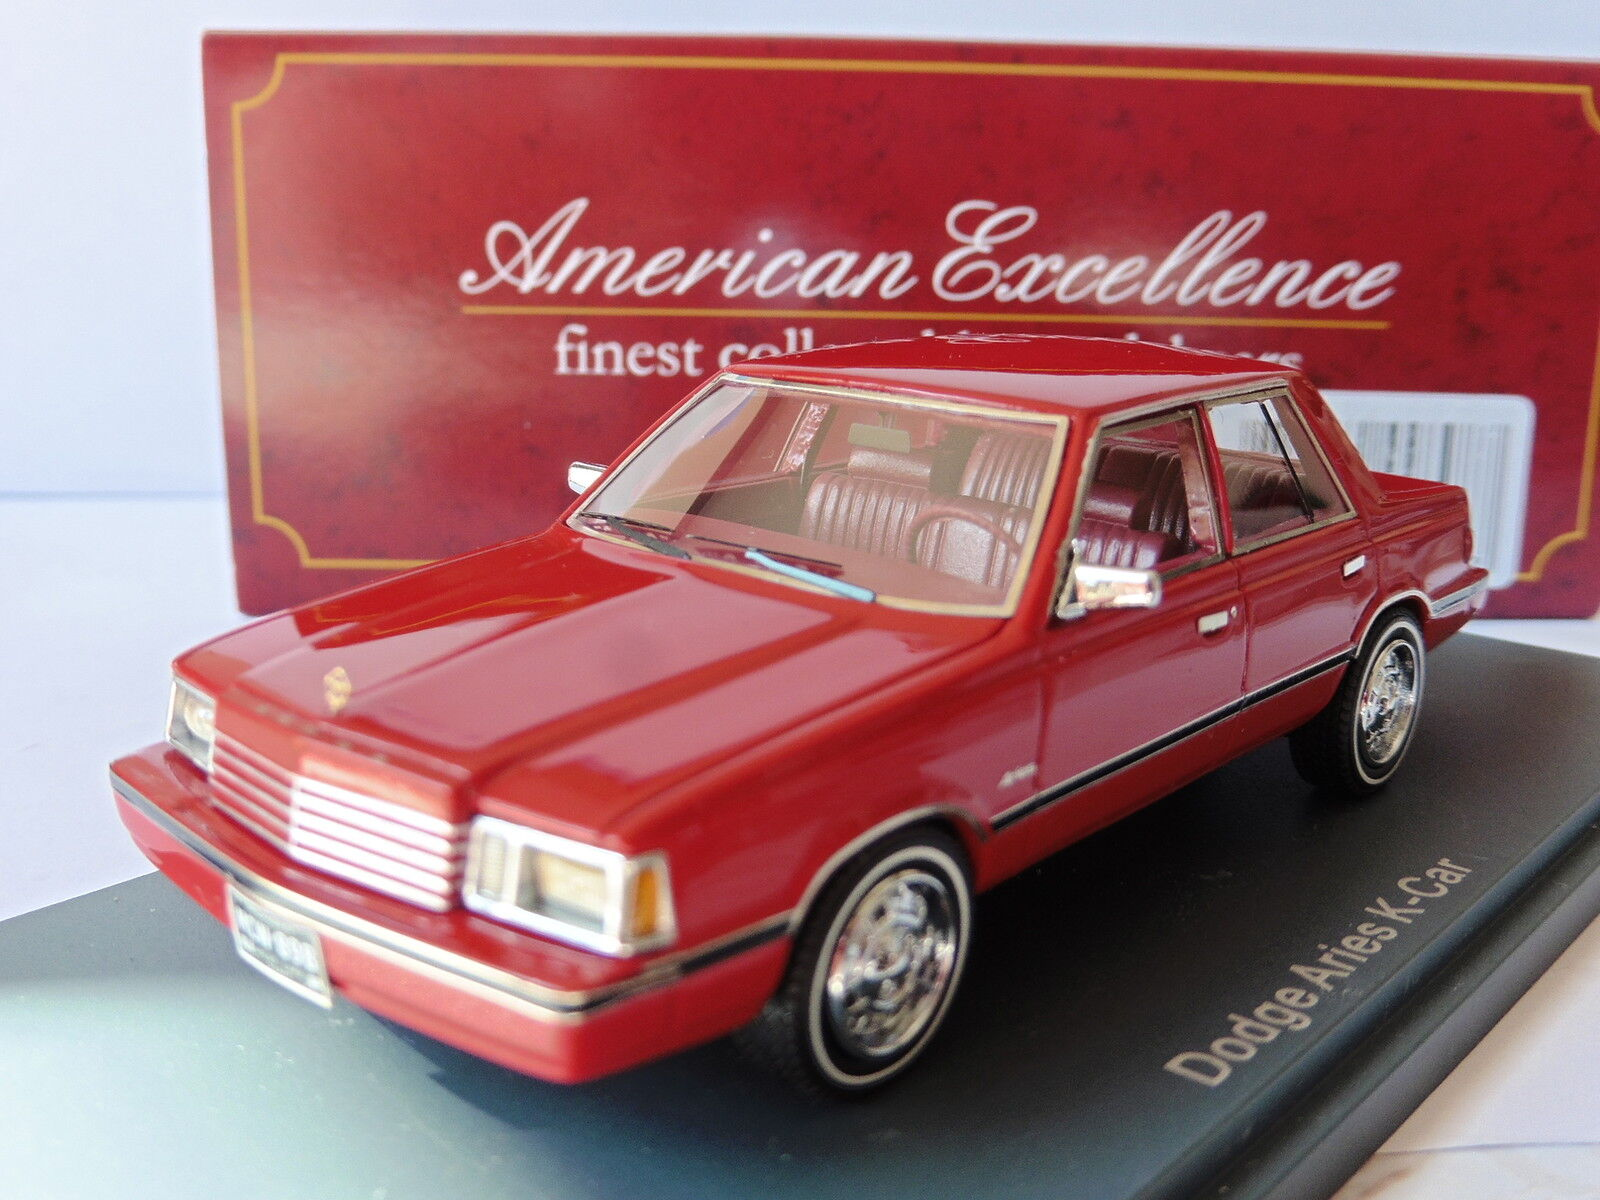 Dodge aries k car red 1983 neo 44898 1 43 red red red american are